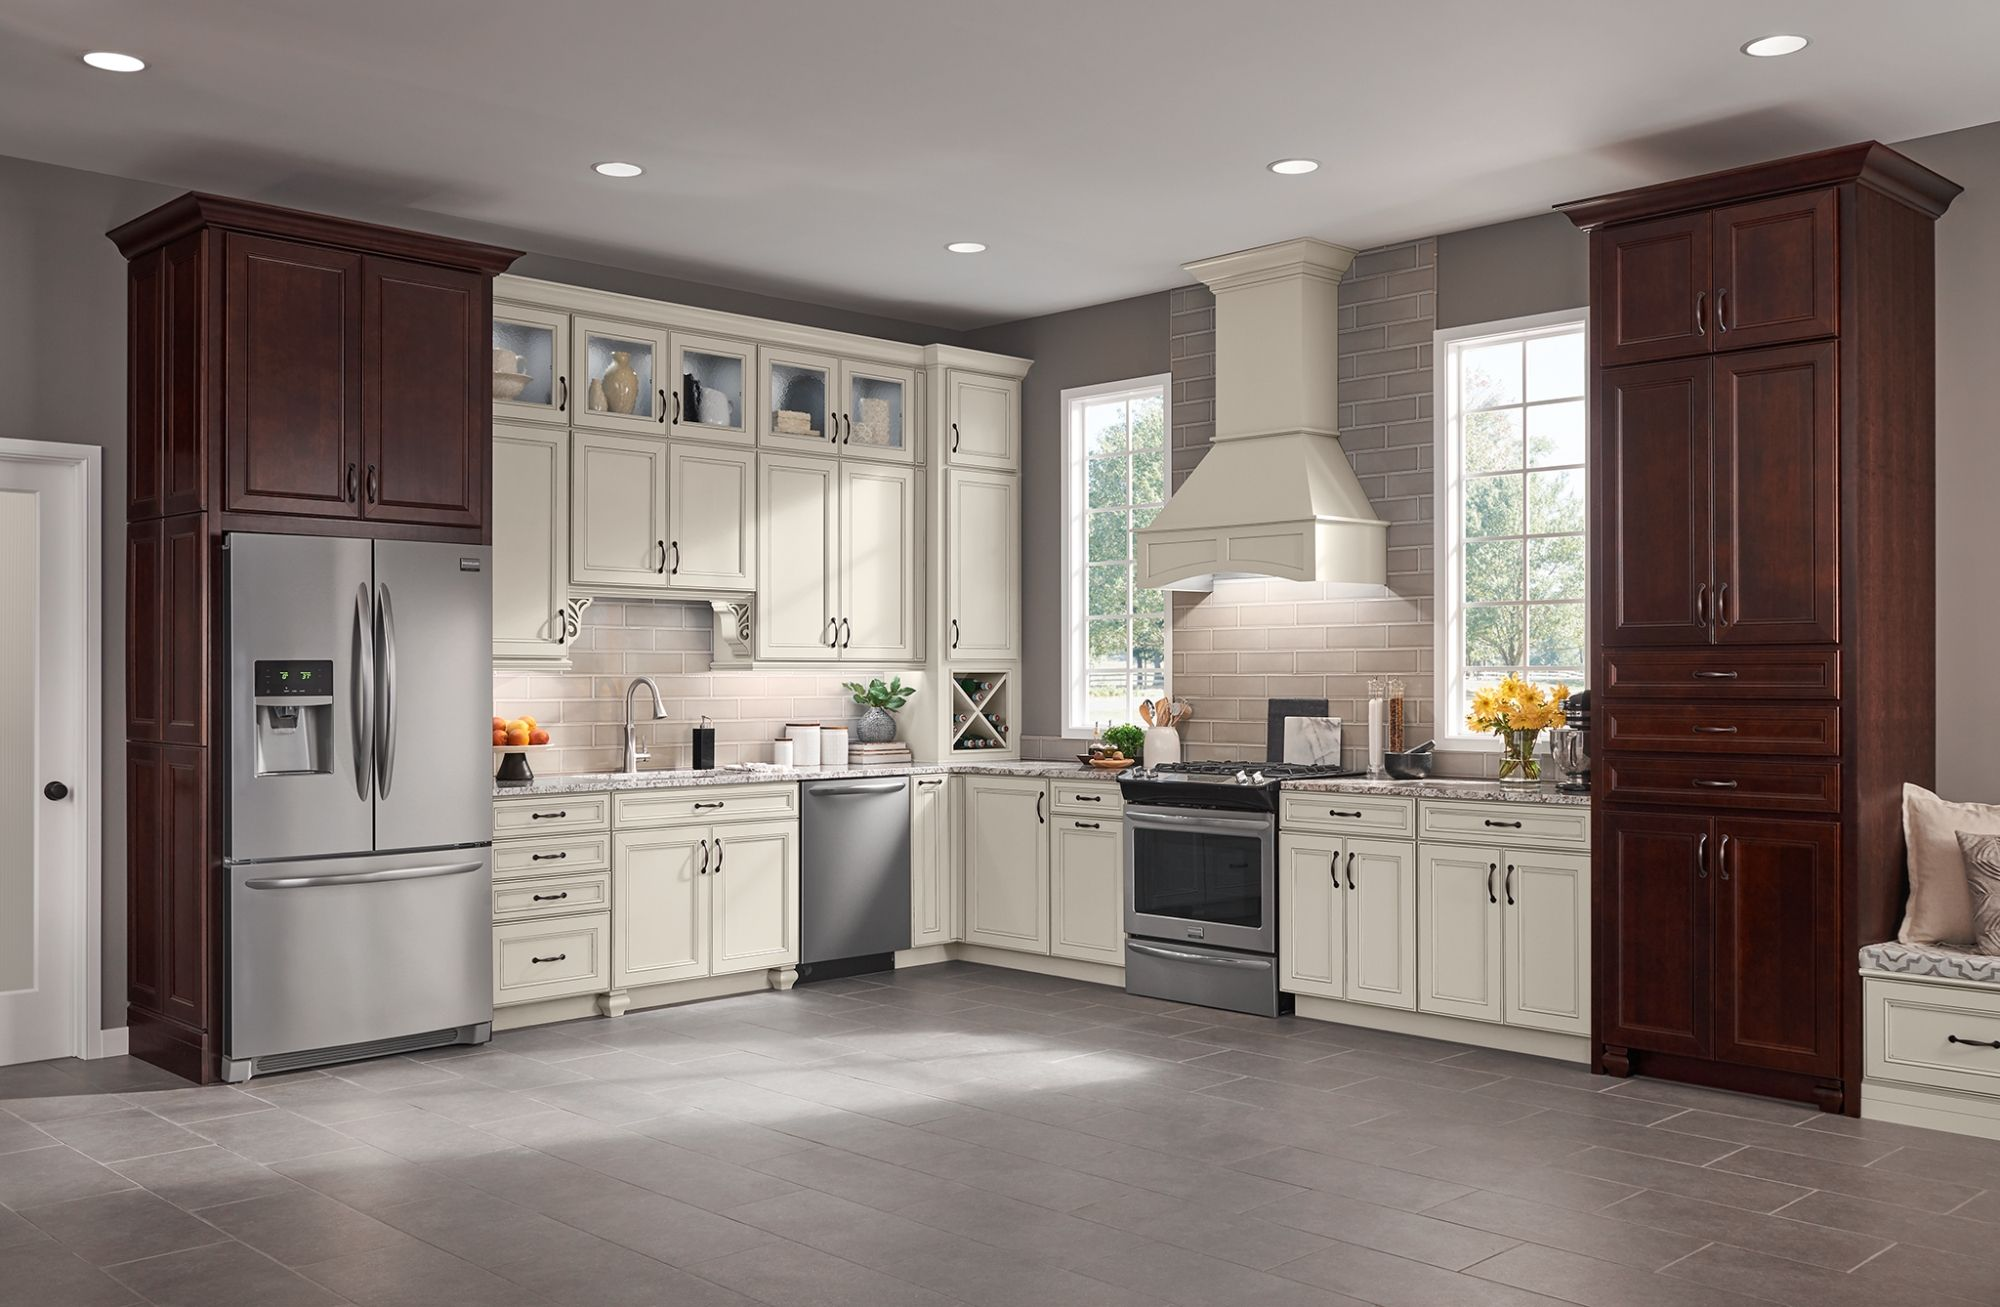 Macarthur By American Woodmark In Painted Ember Dreamy White Kitchen Rustic Semi Custom Kitchen Cabinets Inexpensive Kitchen Cabinets